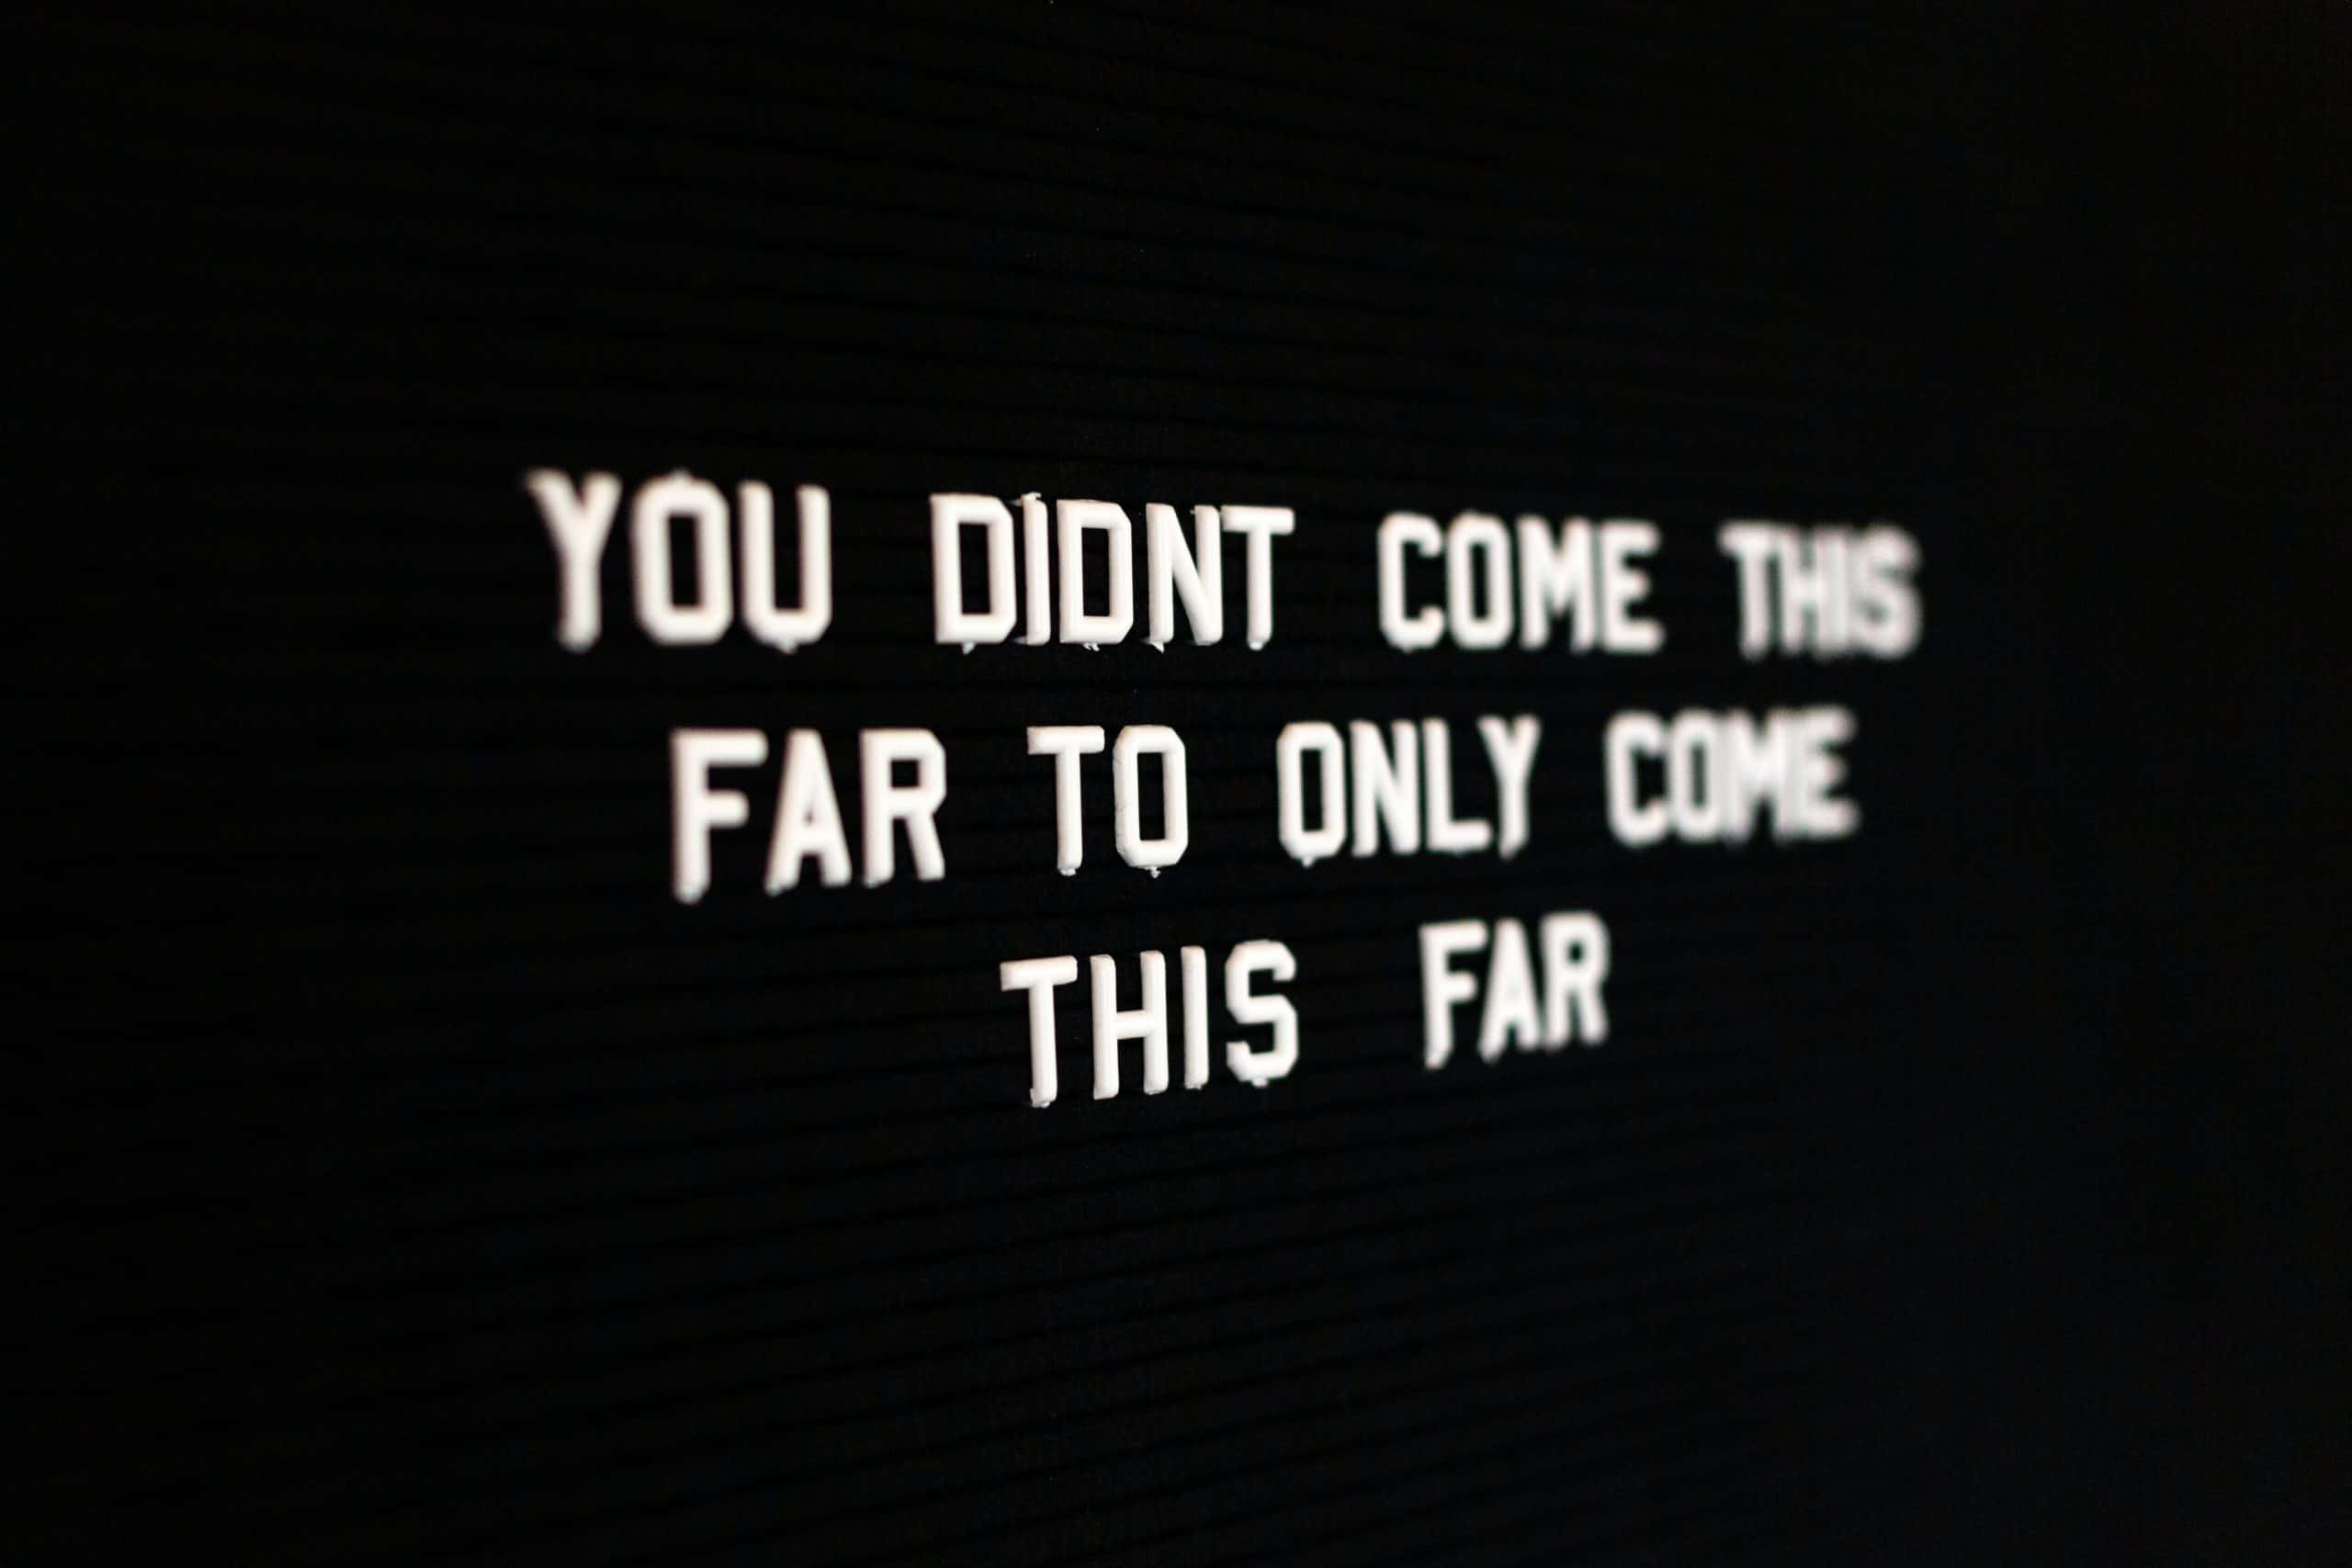 You didn't come this far, to only come this far